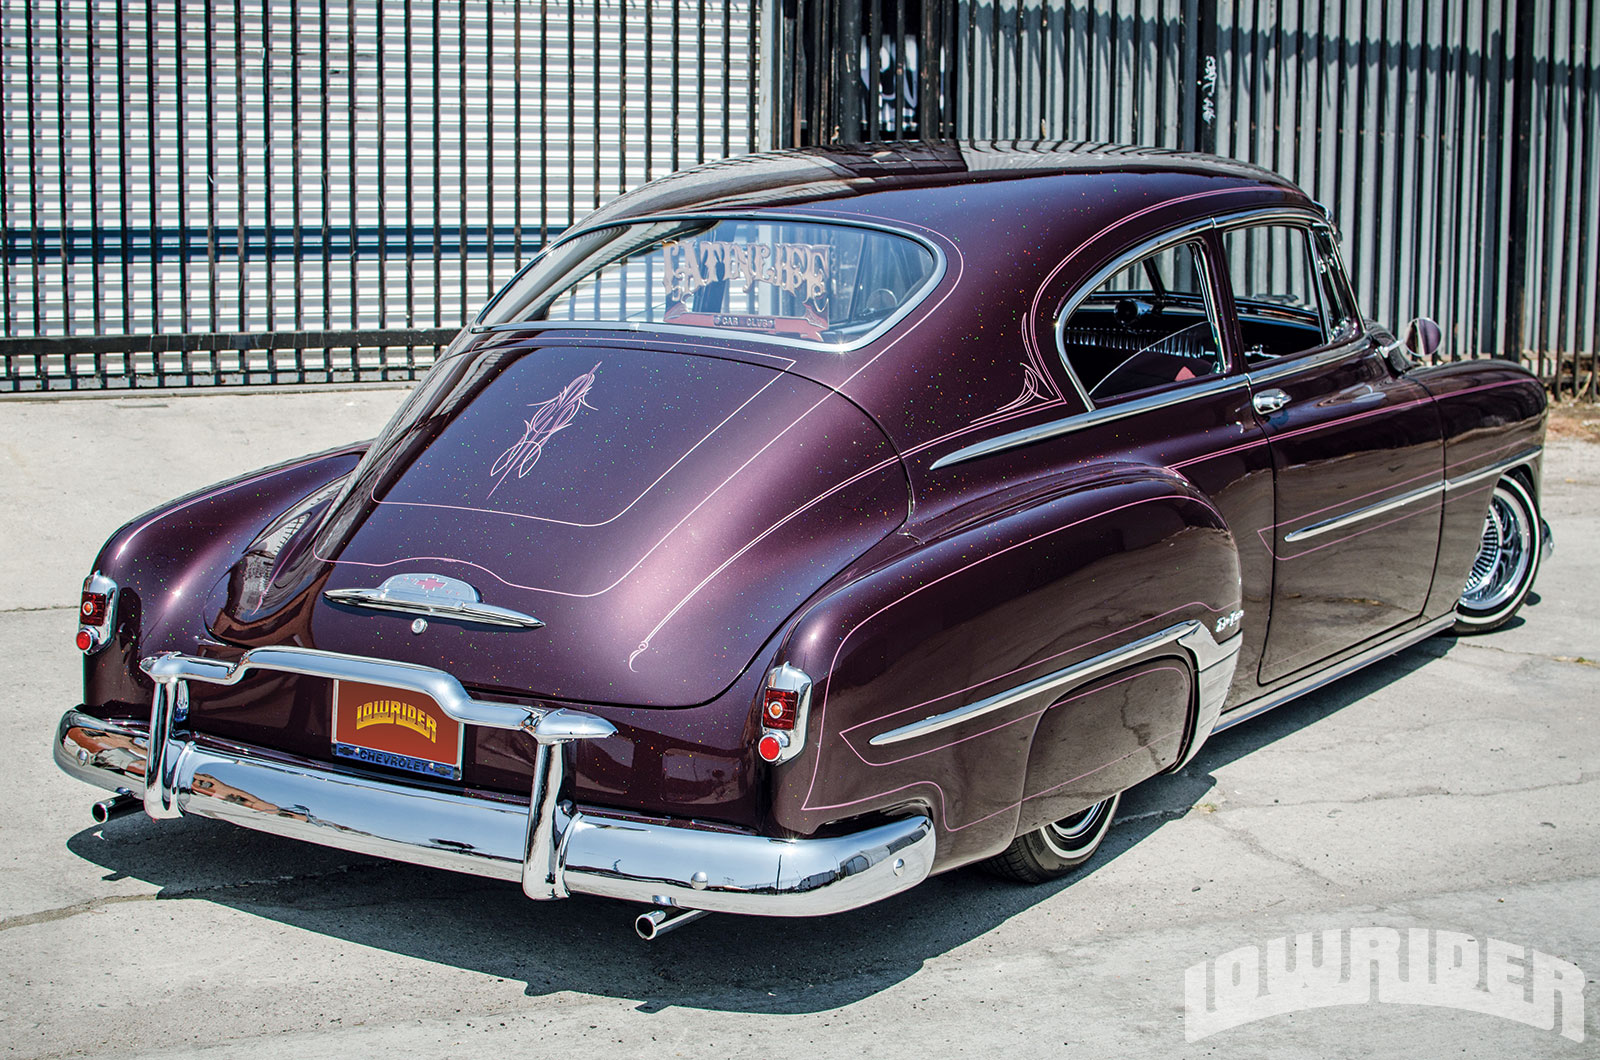 All Chevy 1952 chevy styleline parts : 1952 Chevrolet Fleetline Deluxe - Lowrider Magazine